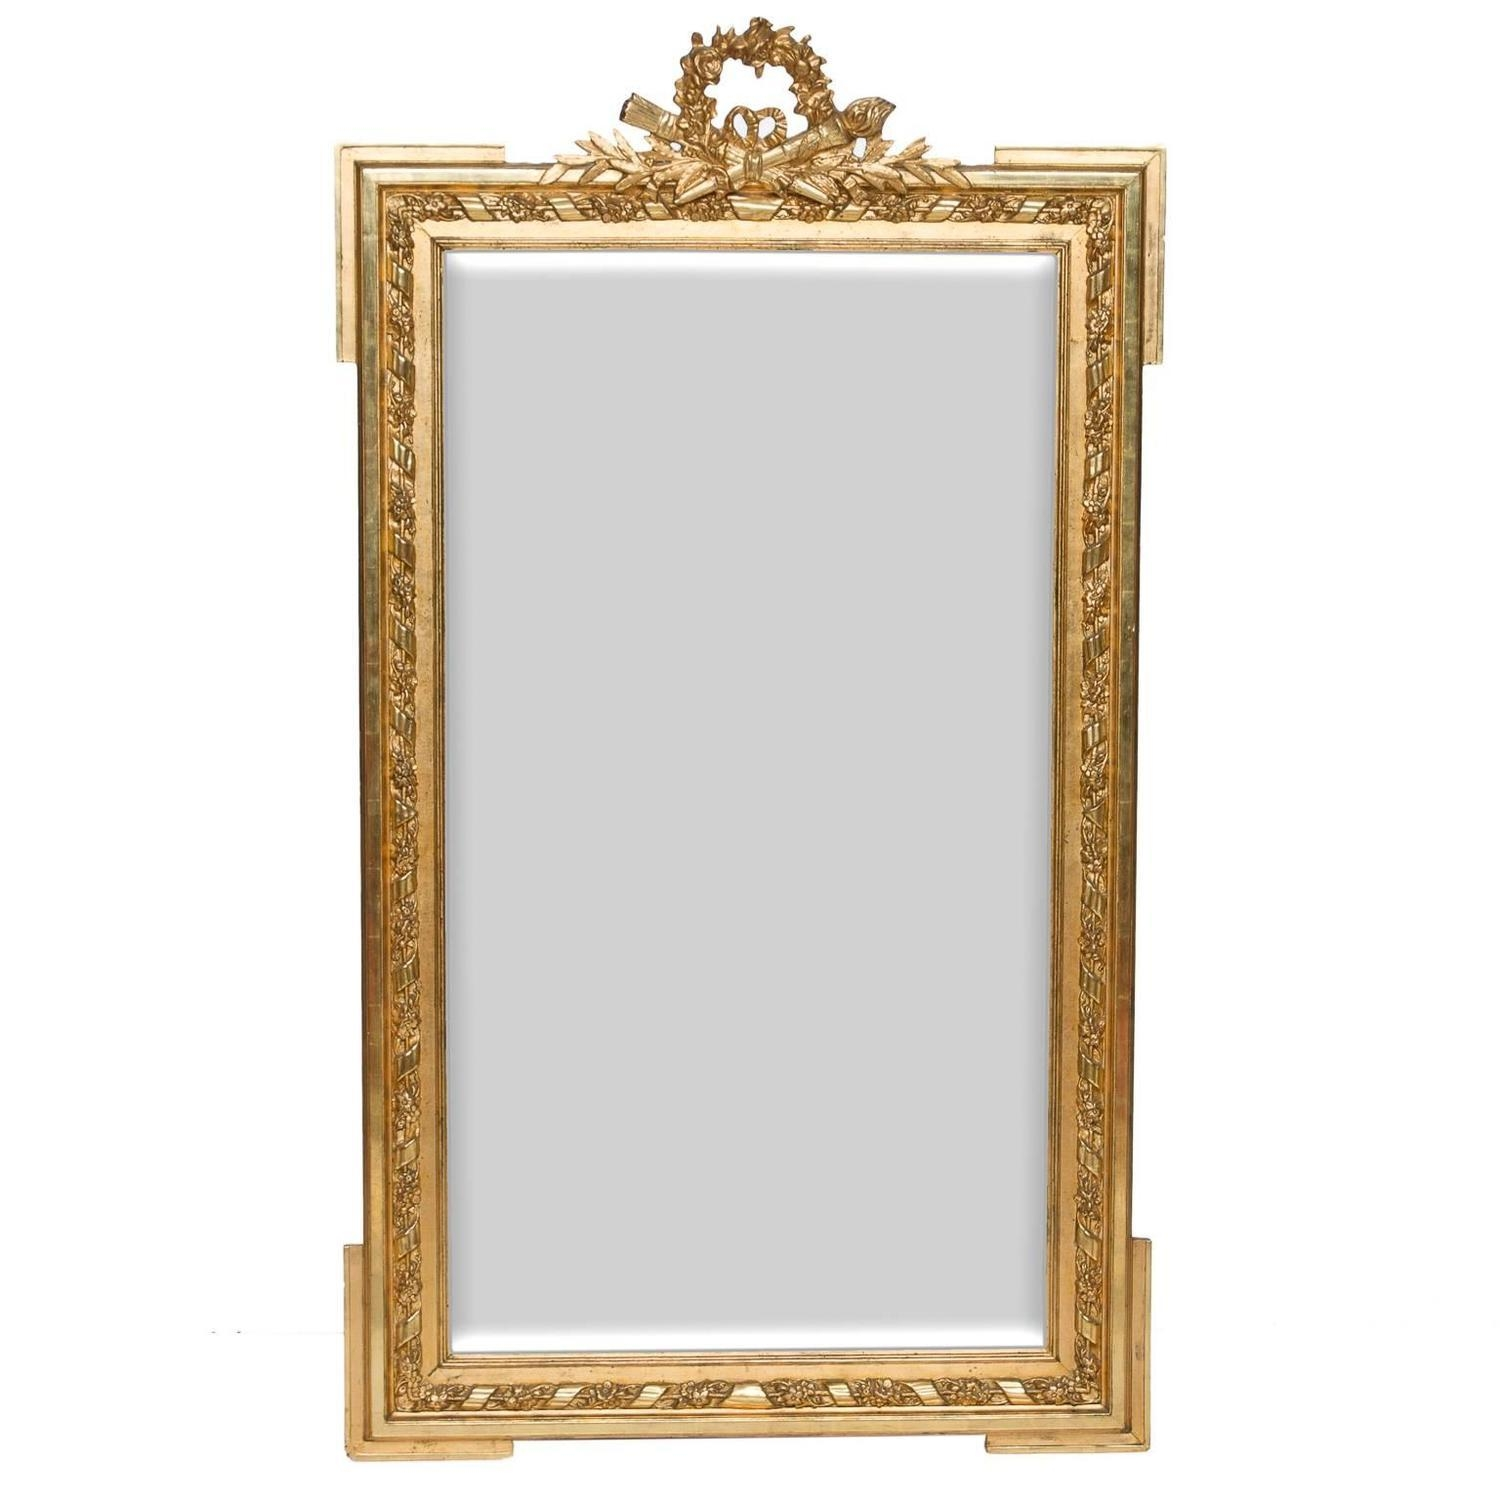 19Th Century Louis Xvi Gold Leaf Mirror At 1Stdibs Within Gold Antique Mirror (Image 1 of 20)